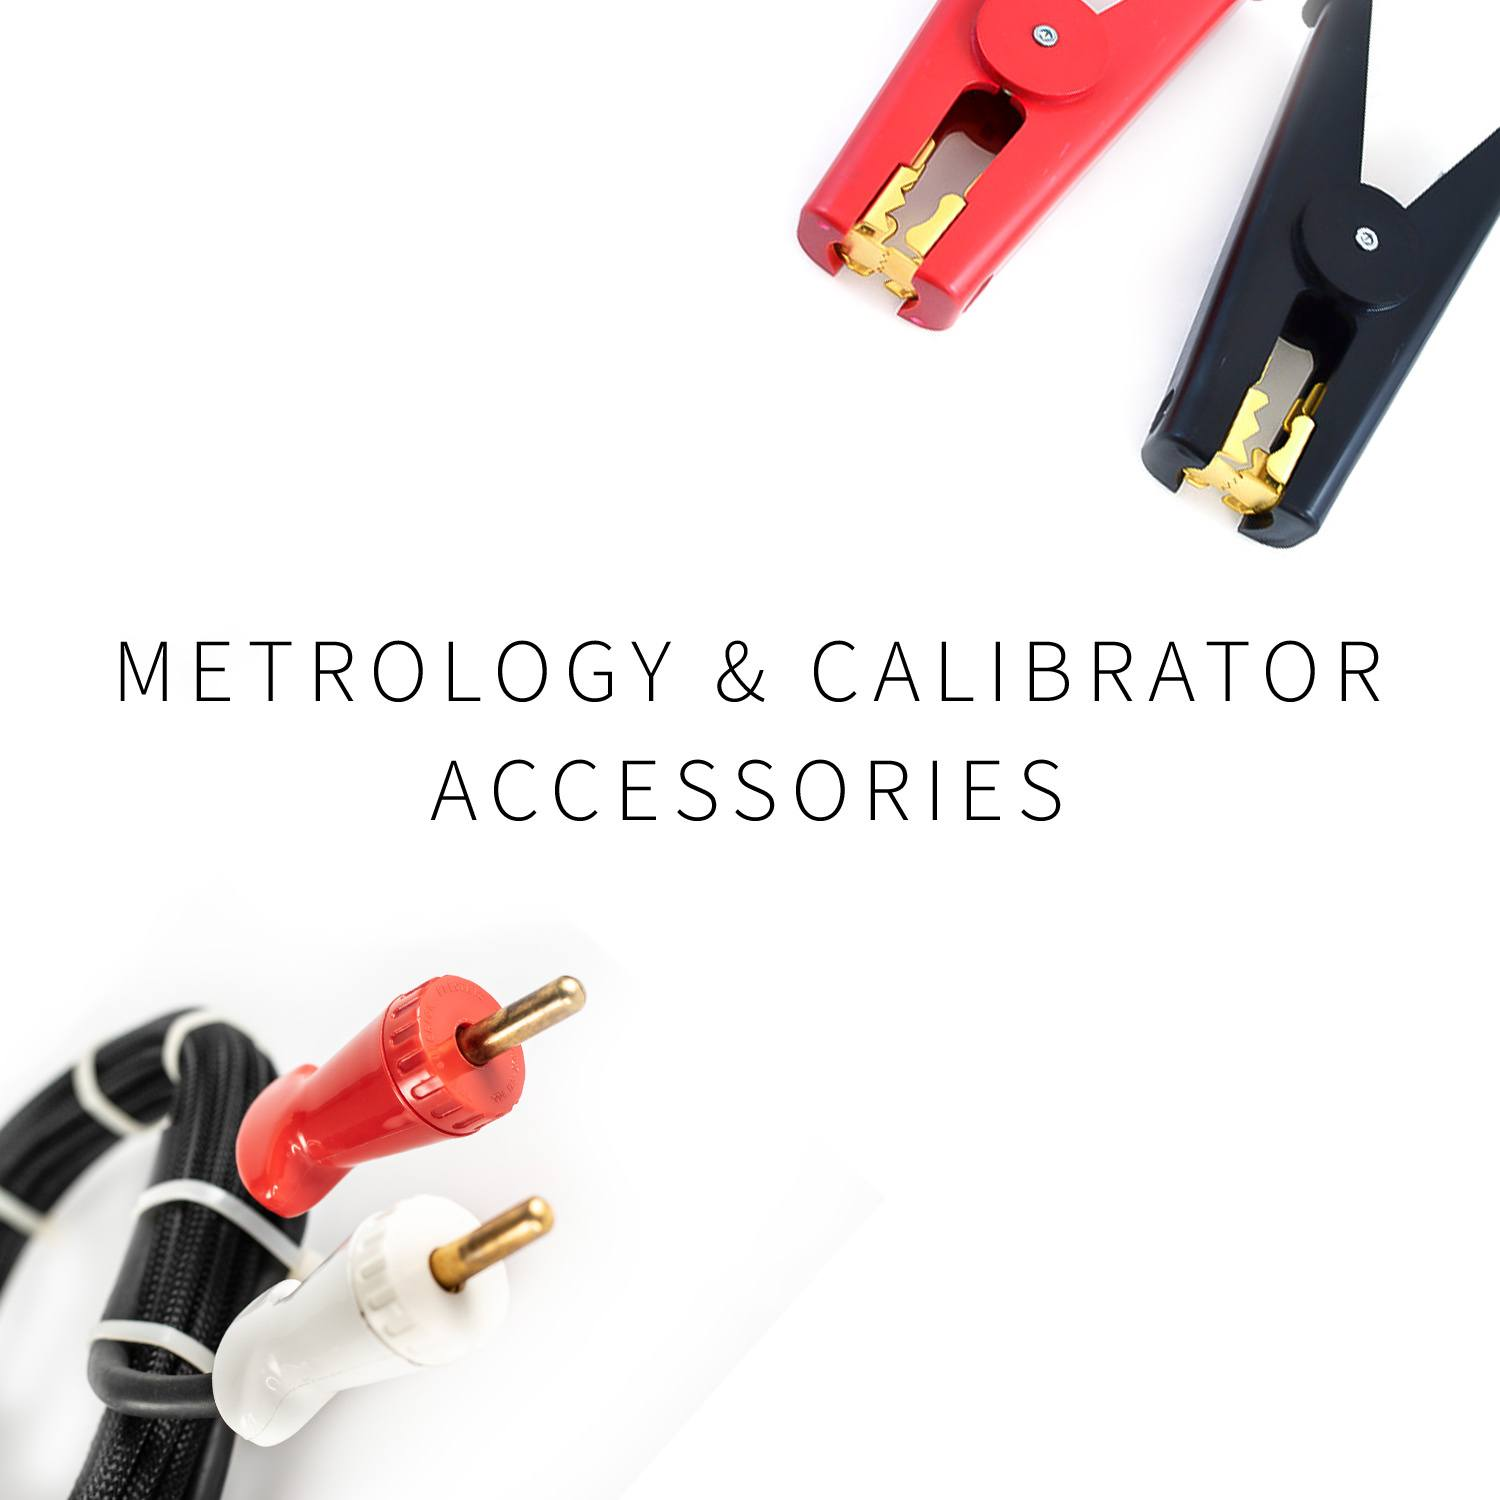 Metrology & Calibrator Accessories